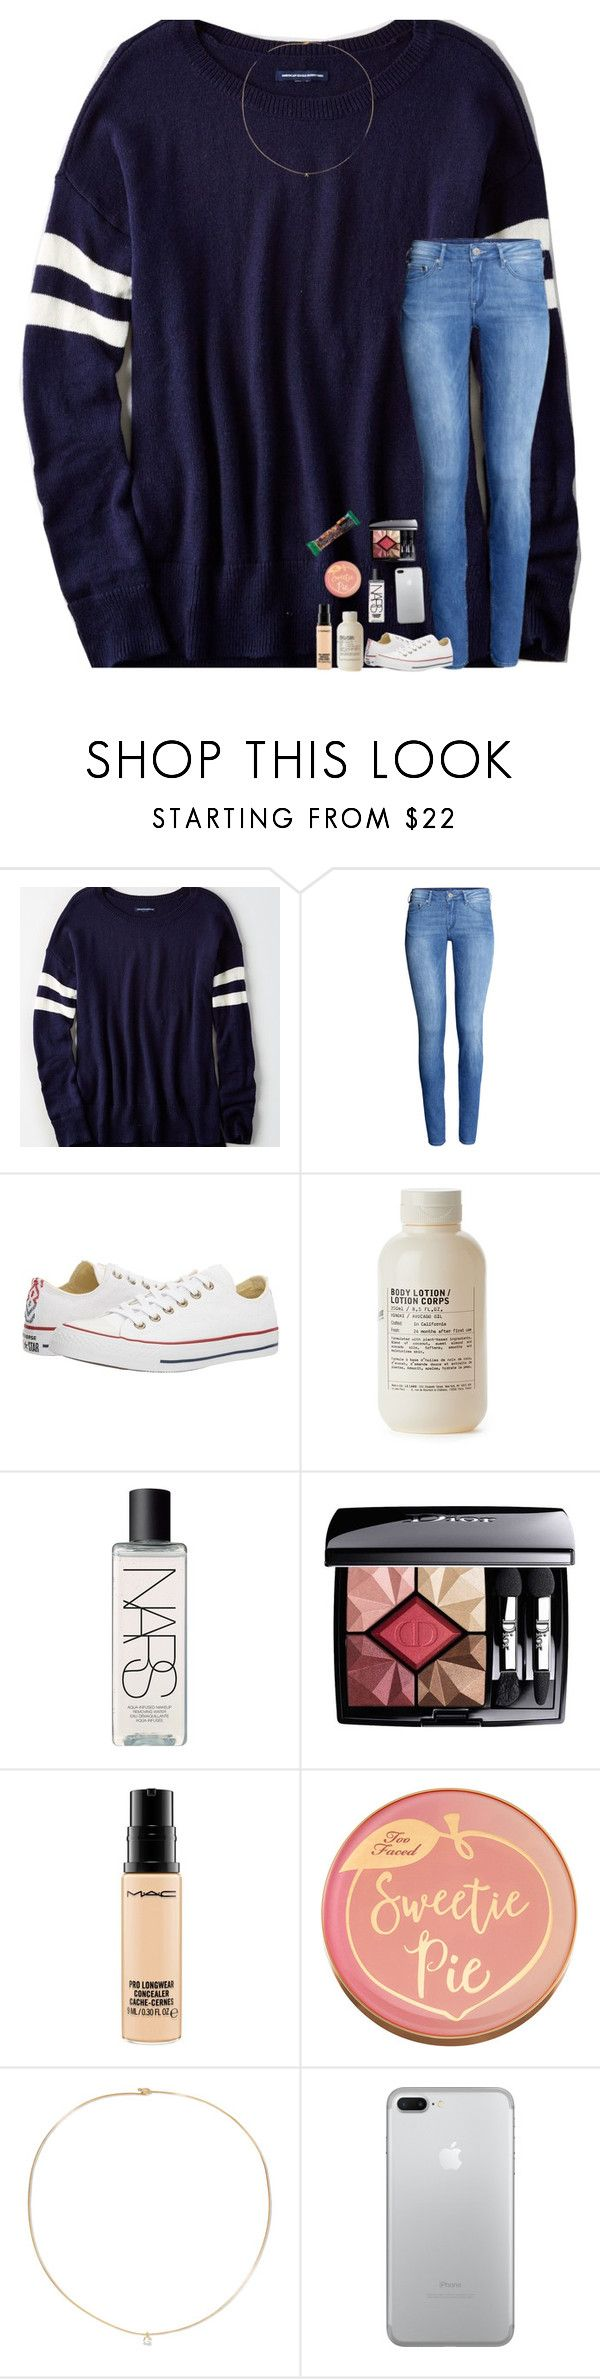 """Going through the motions, cause we can't fix what's broken"" by livpreppydancer ❤ liked on Polyvore featuring American Eagle Outfitters, H&M, Converse, Le Labo, NARS Cosmetics, Christian Dior, MAC Cosmetics, Too Faced Cosmetics and Loren Stewart"